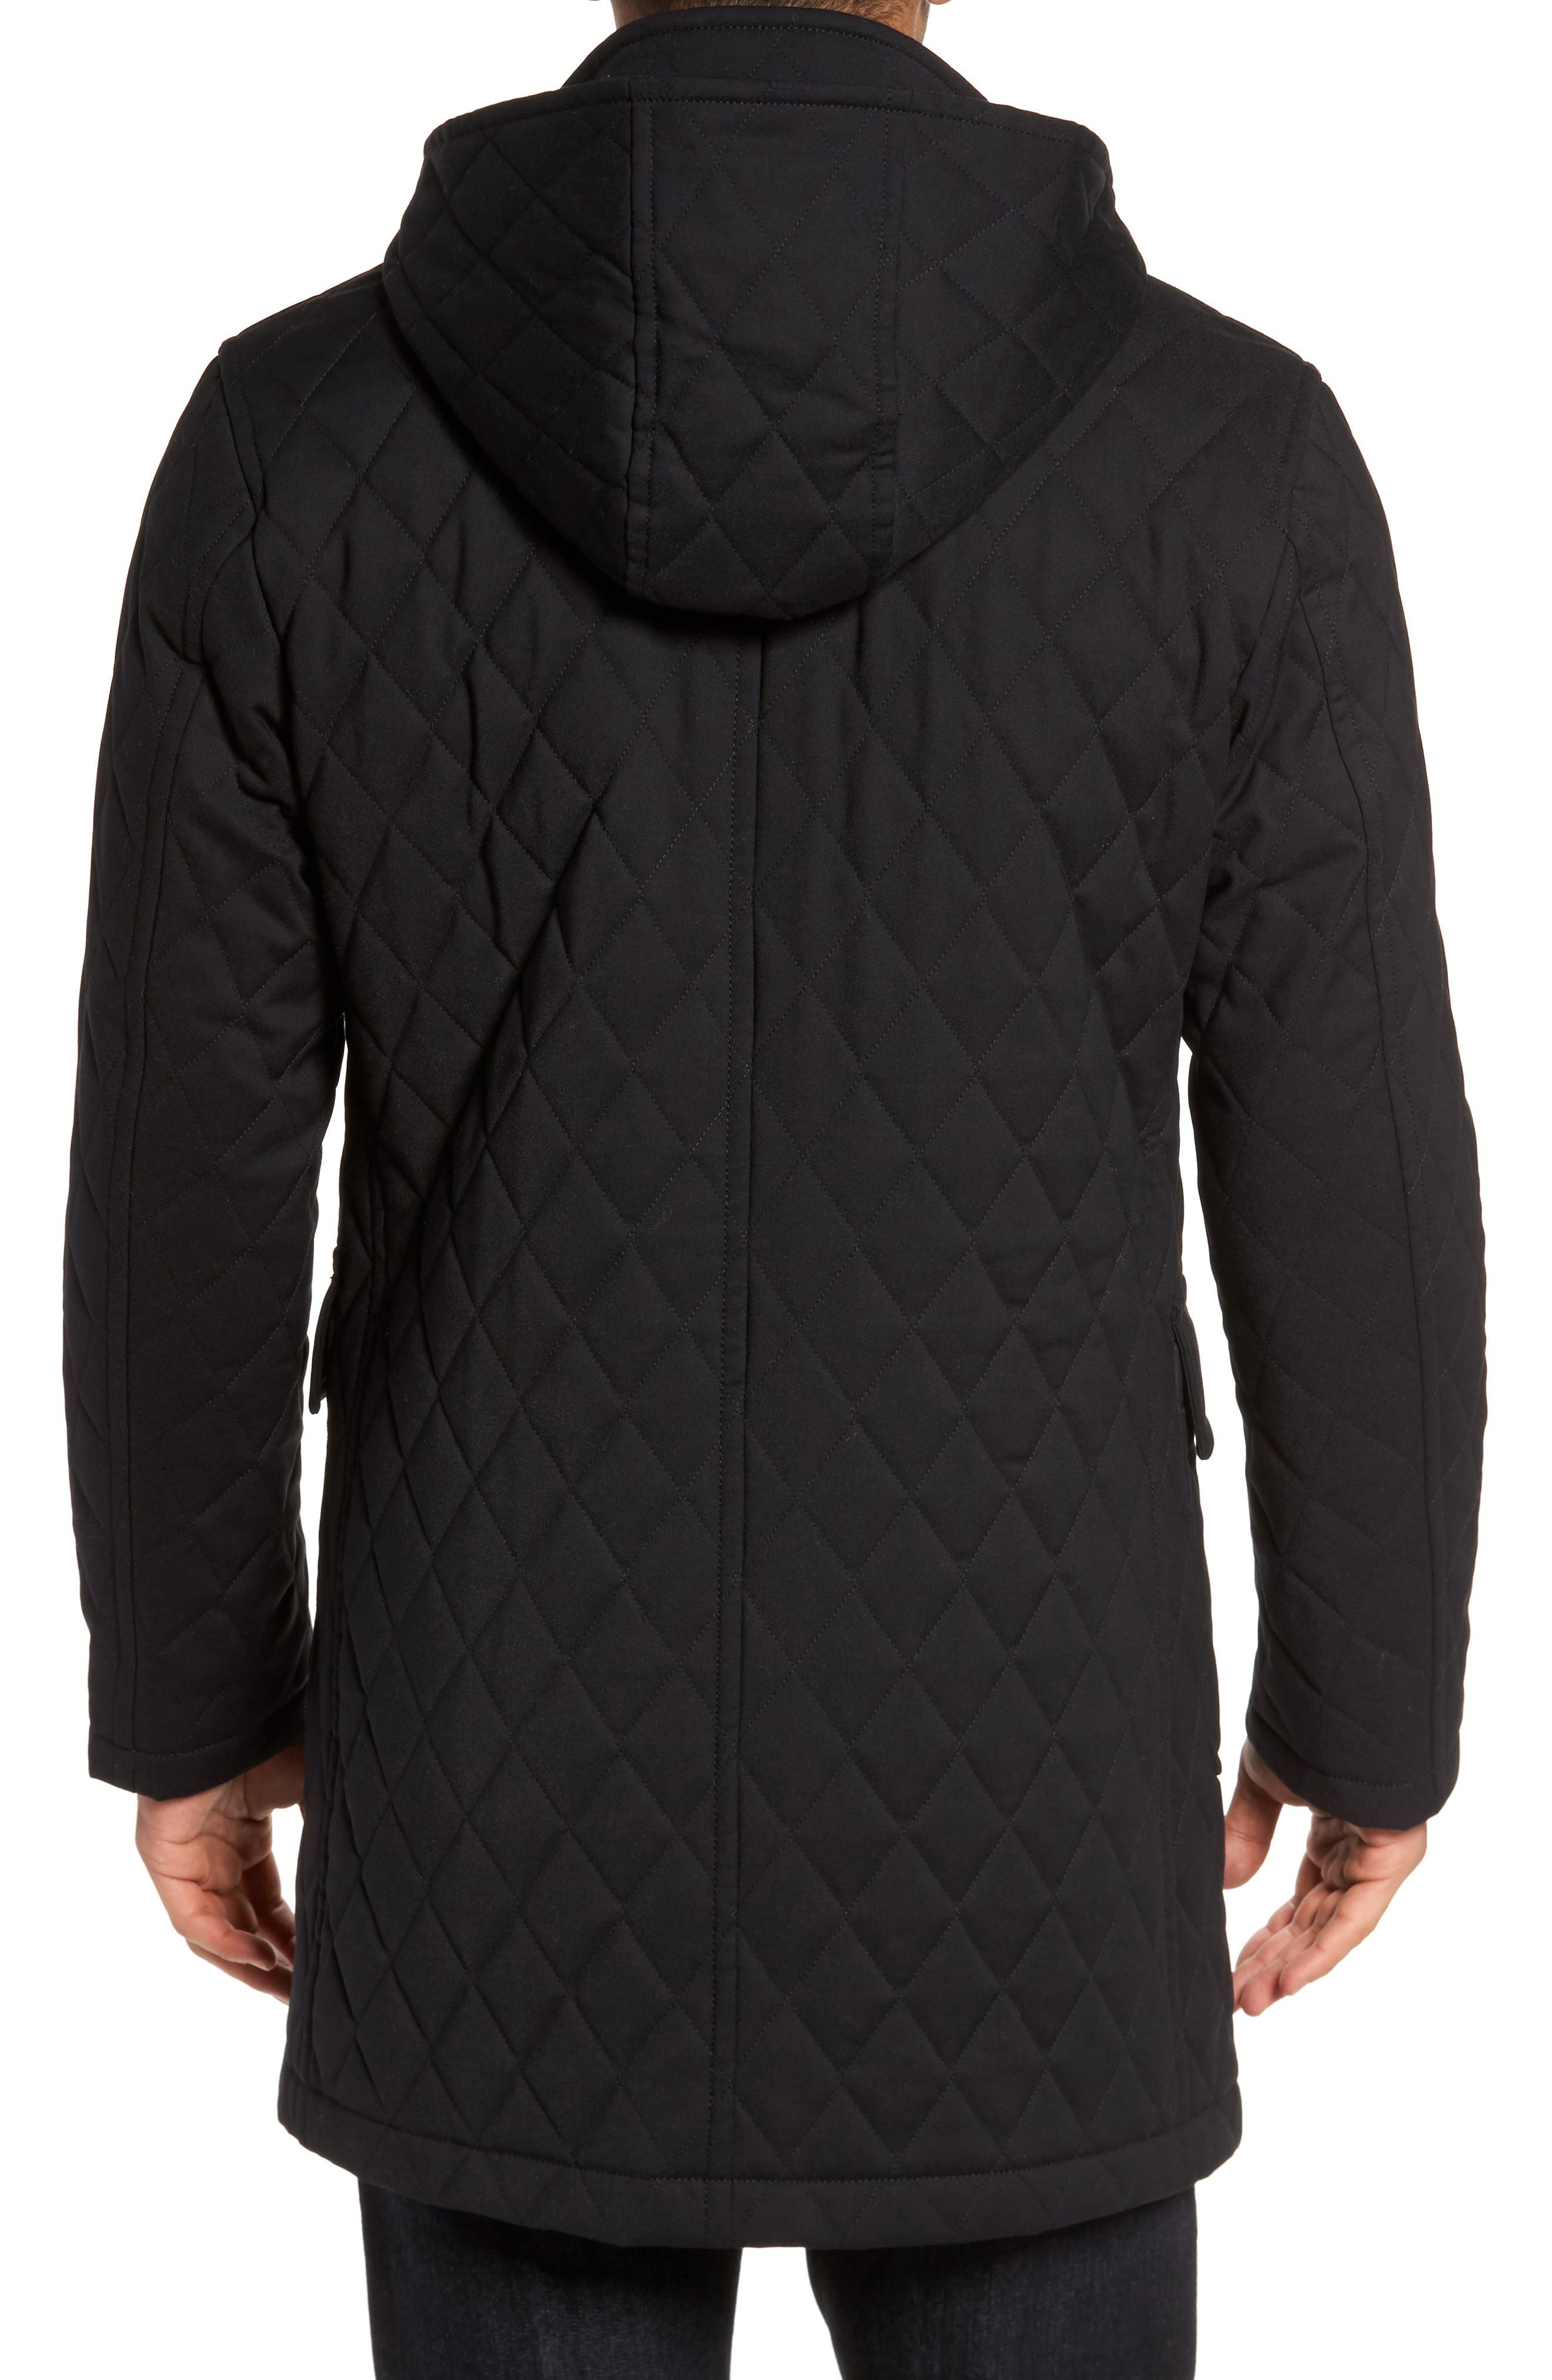 Francisco Quilted Duffle Coat,                             Alternate thumbnail 2, color,                             009